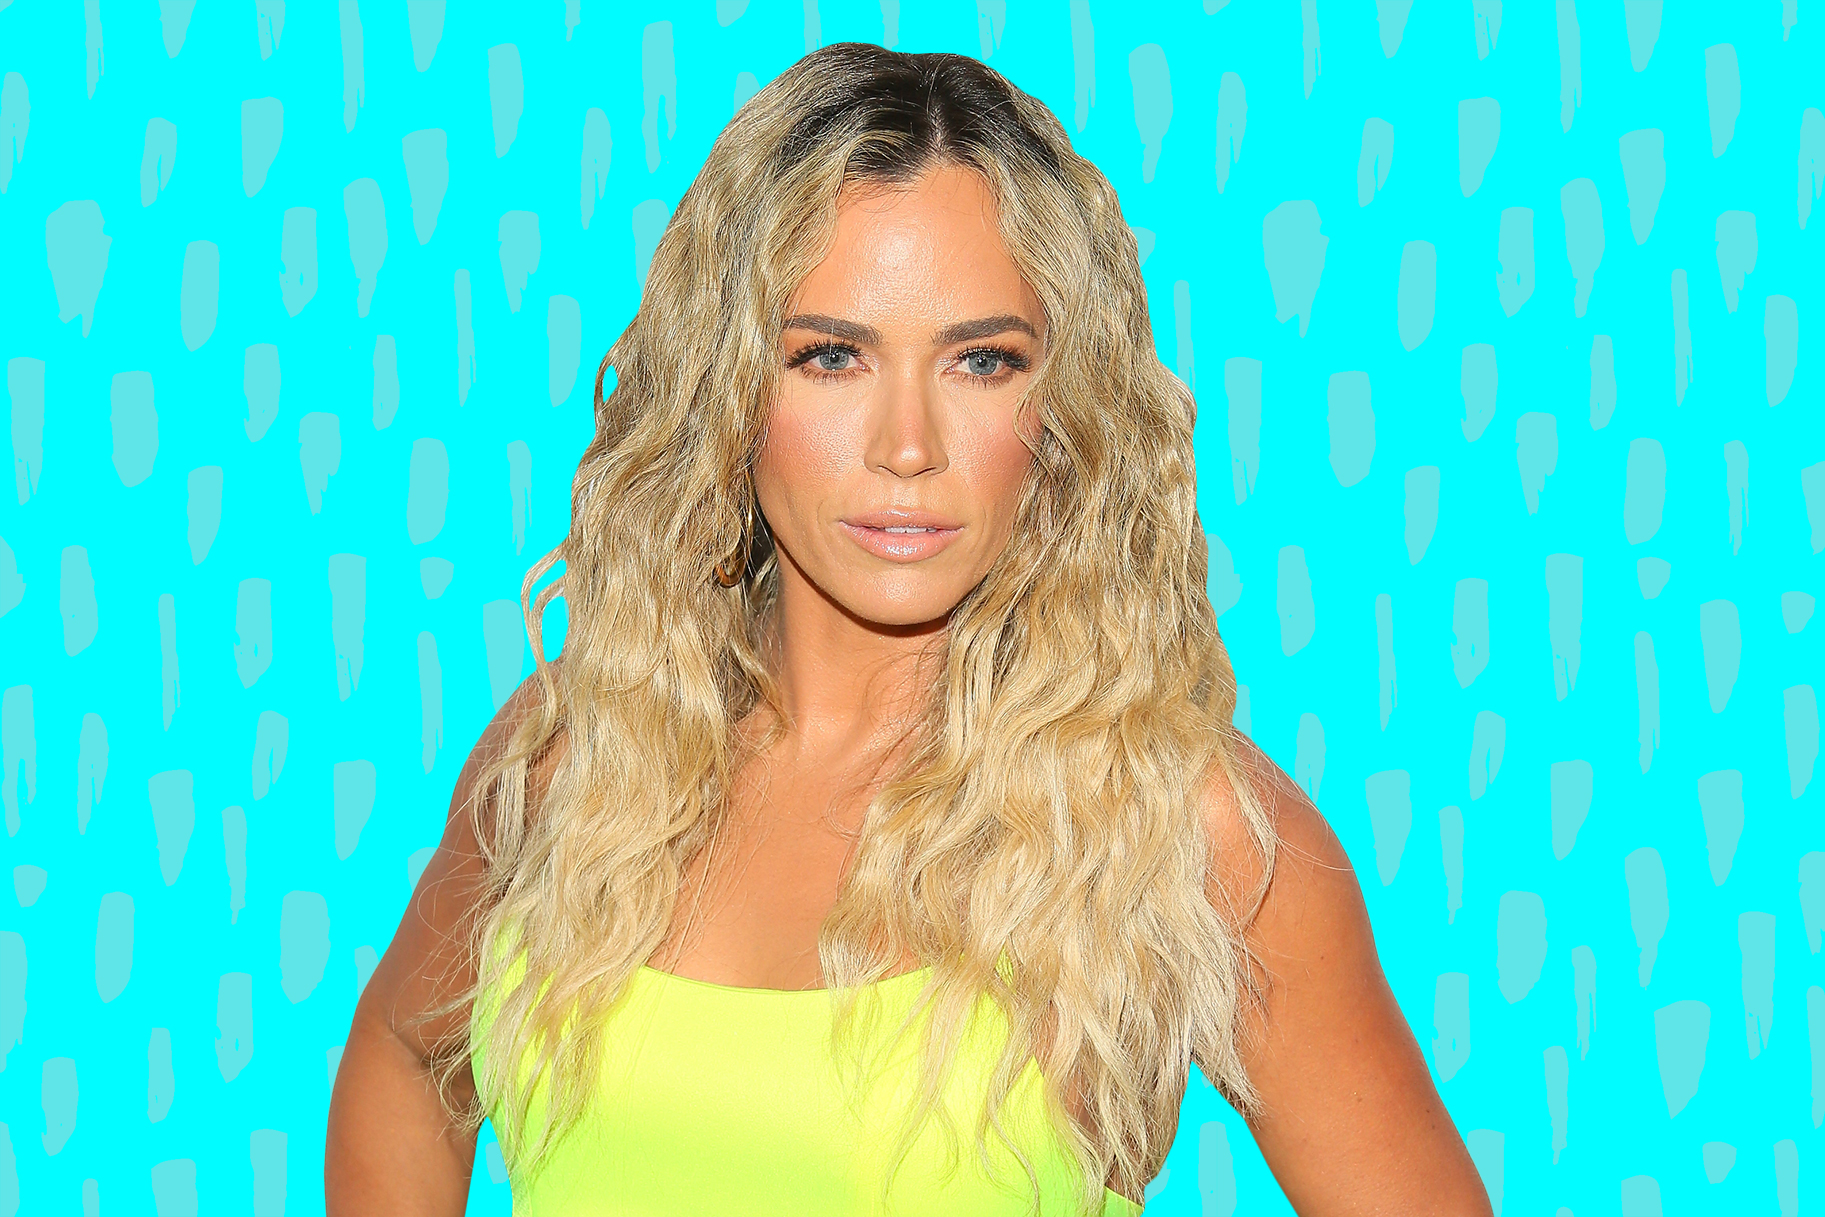 Teddi Mellencamp Arroyave's Best Diet Tips